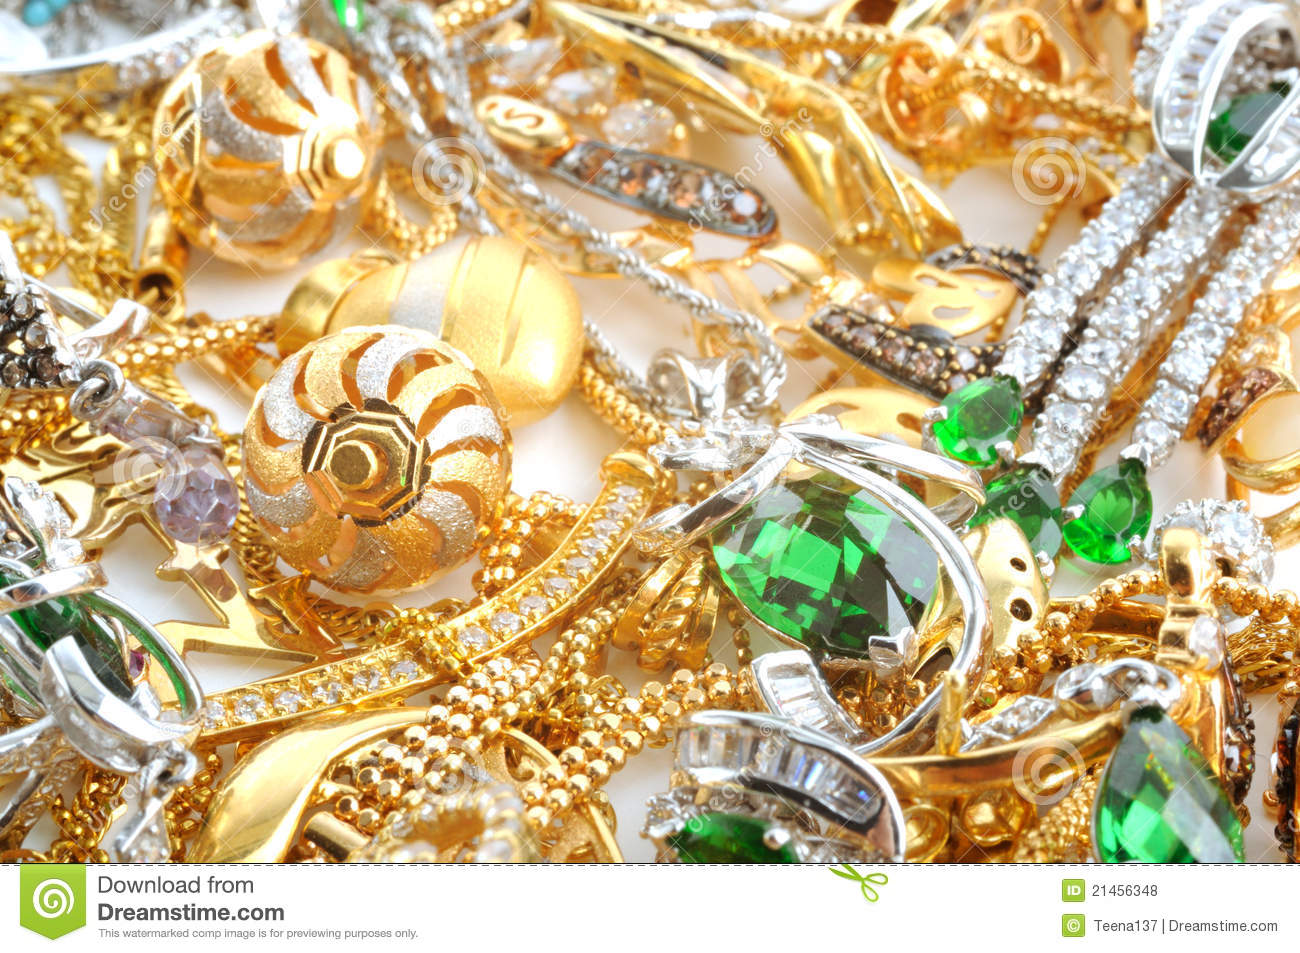 Gold jewelry background stock photo. Image of golden - 21456348